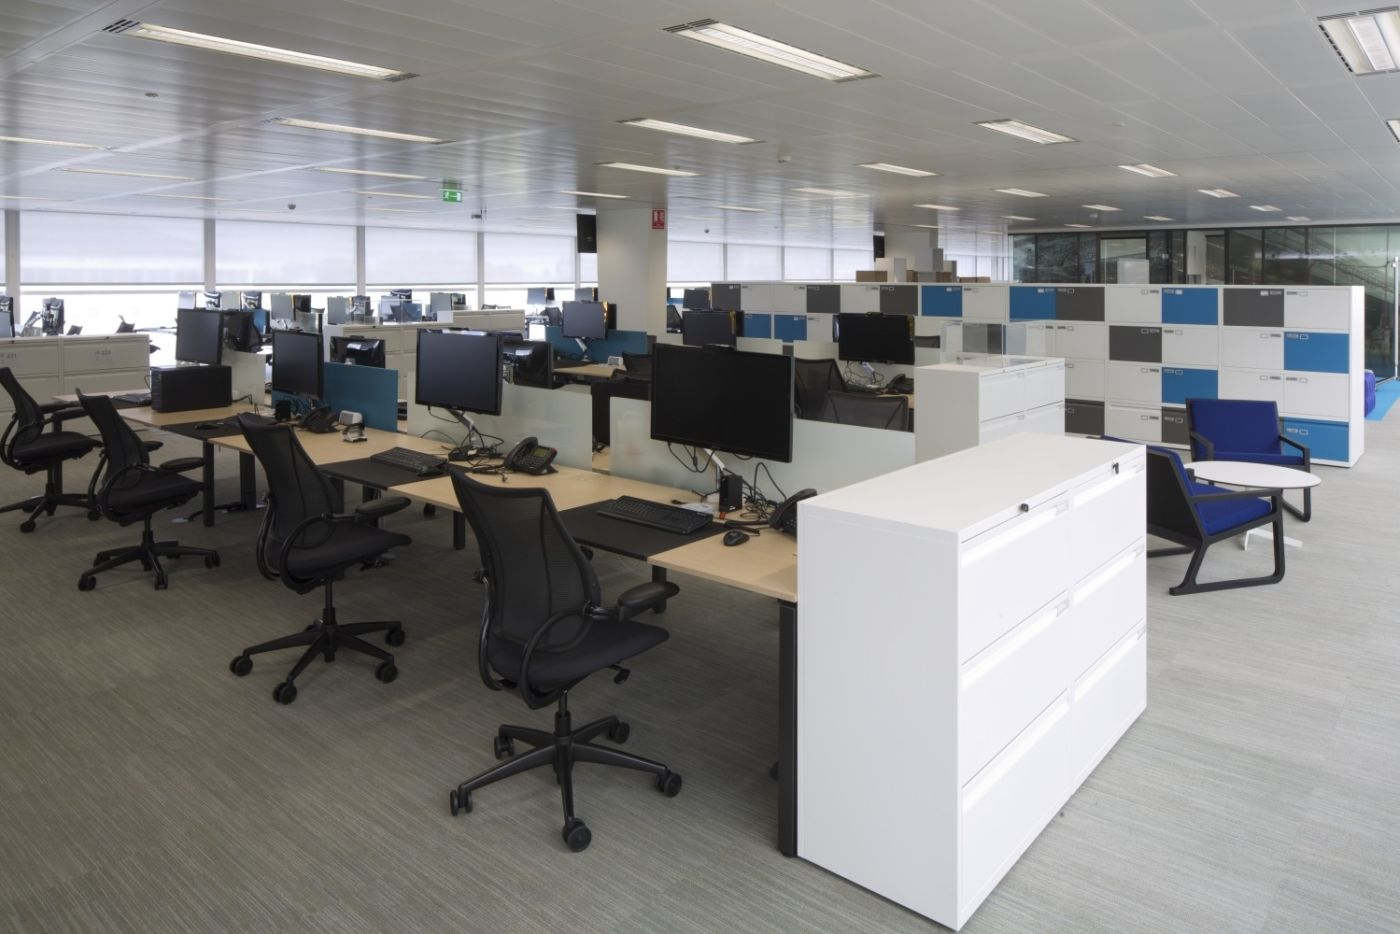 Open fit out of staff desks